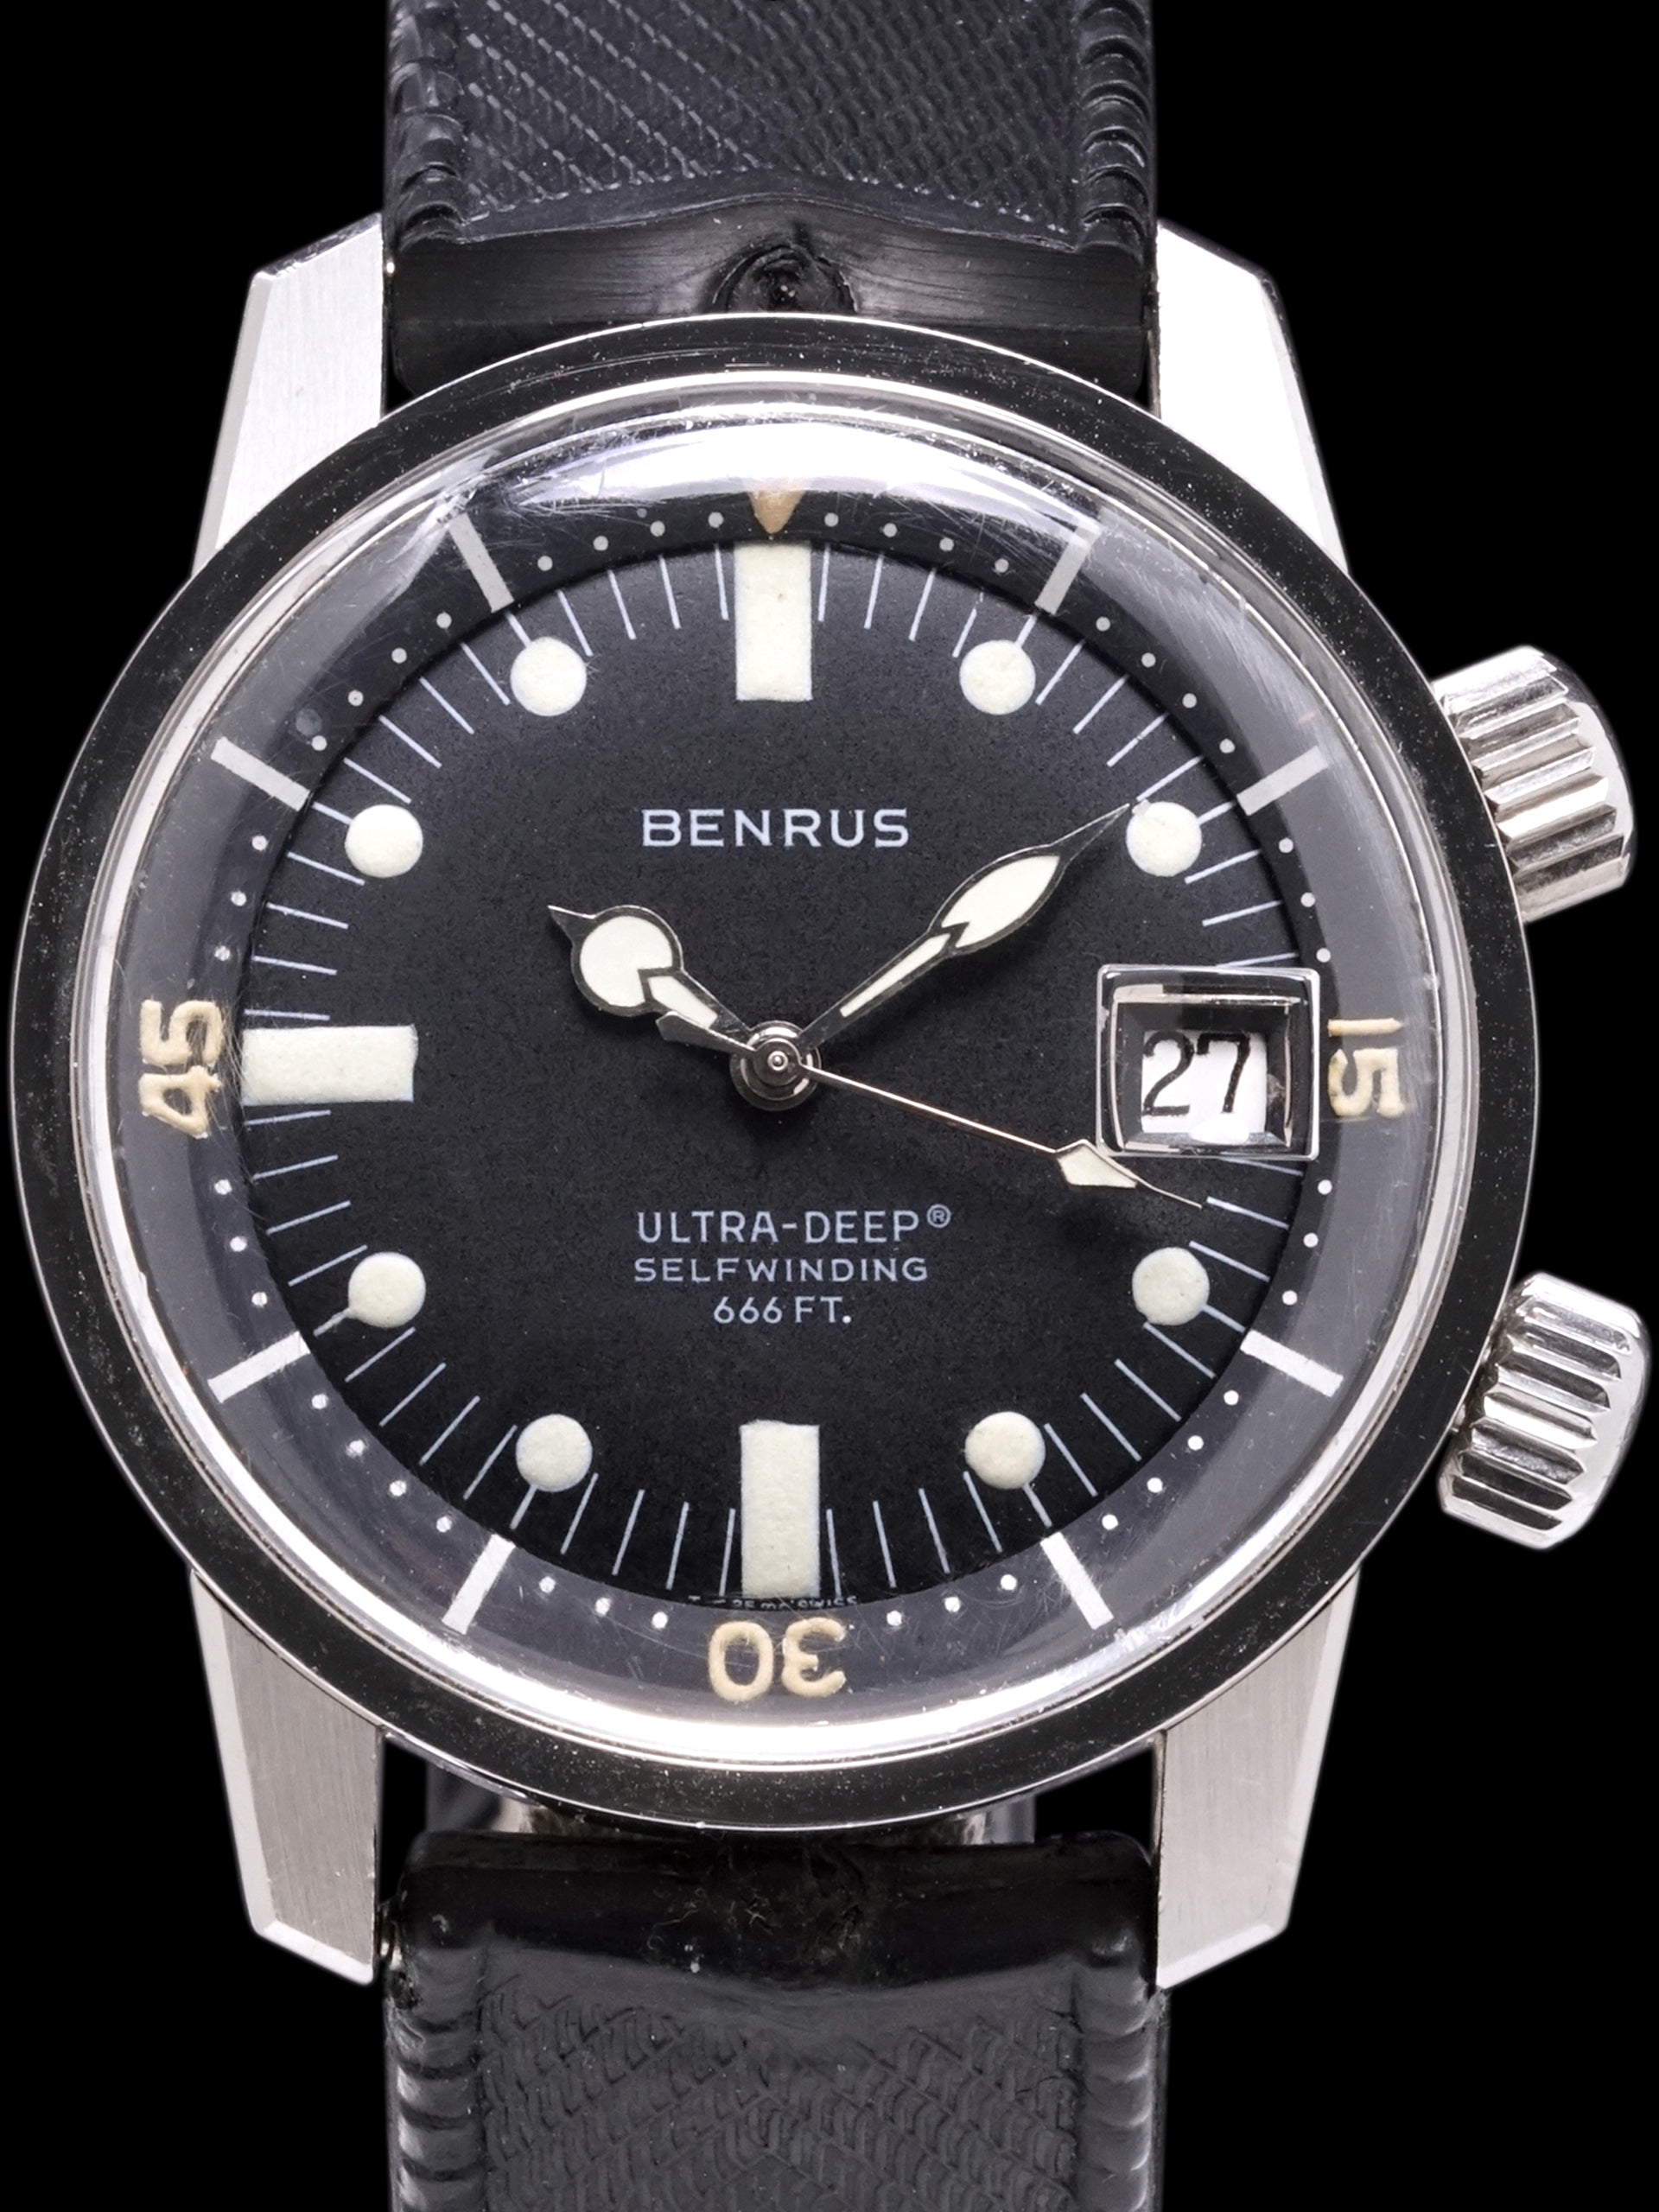 *Unpolished* 1960s Benrus Ultra-Deep (Ref. 6089) Super-Compressor